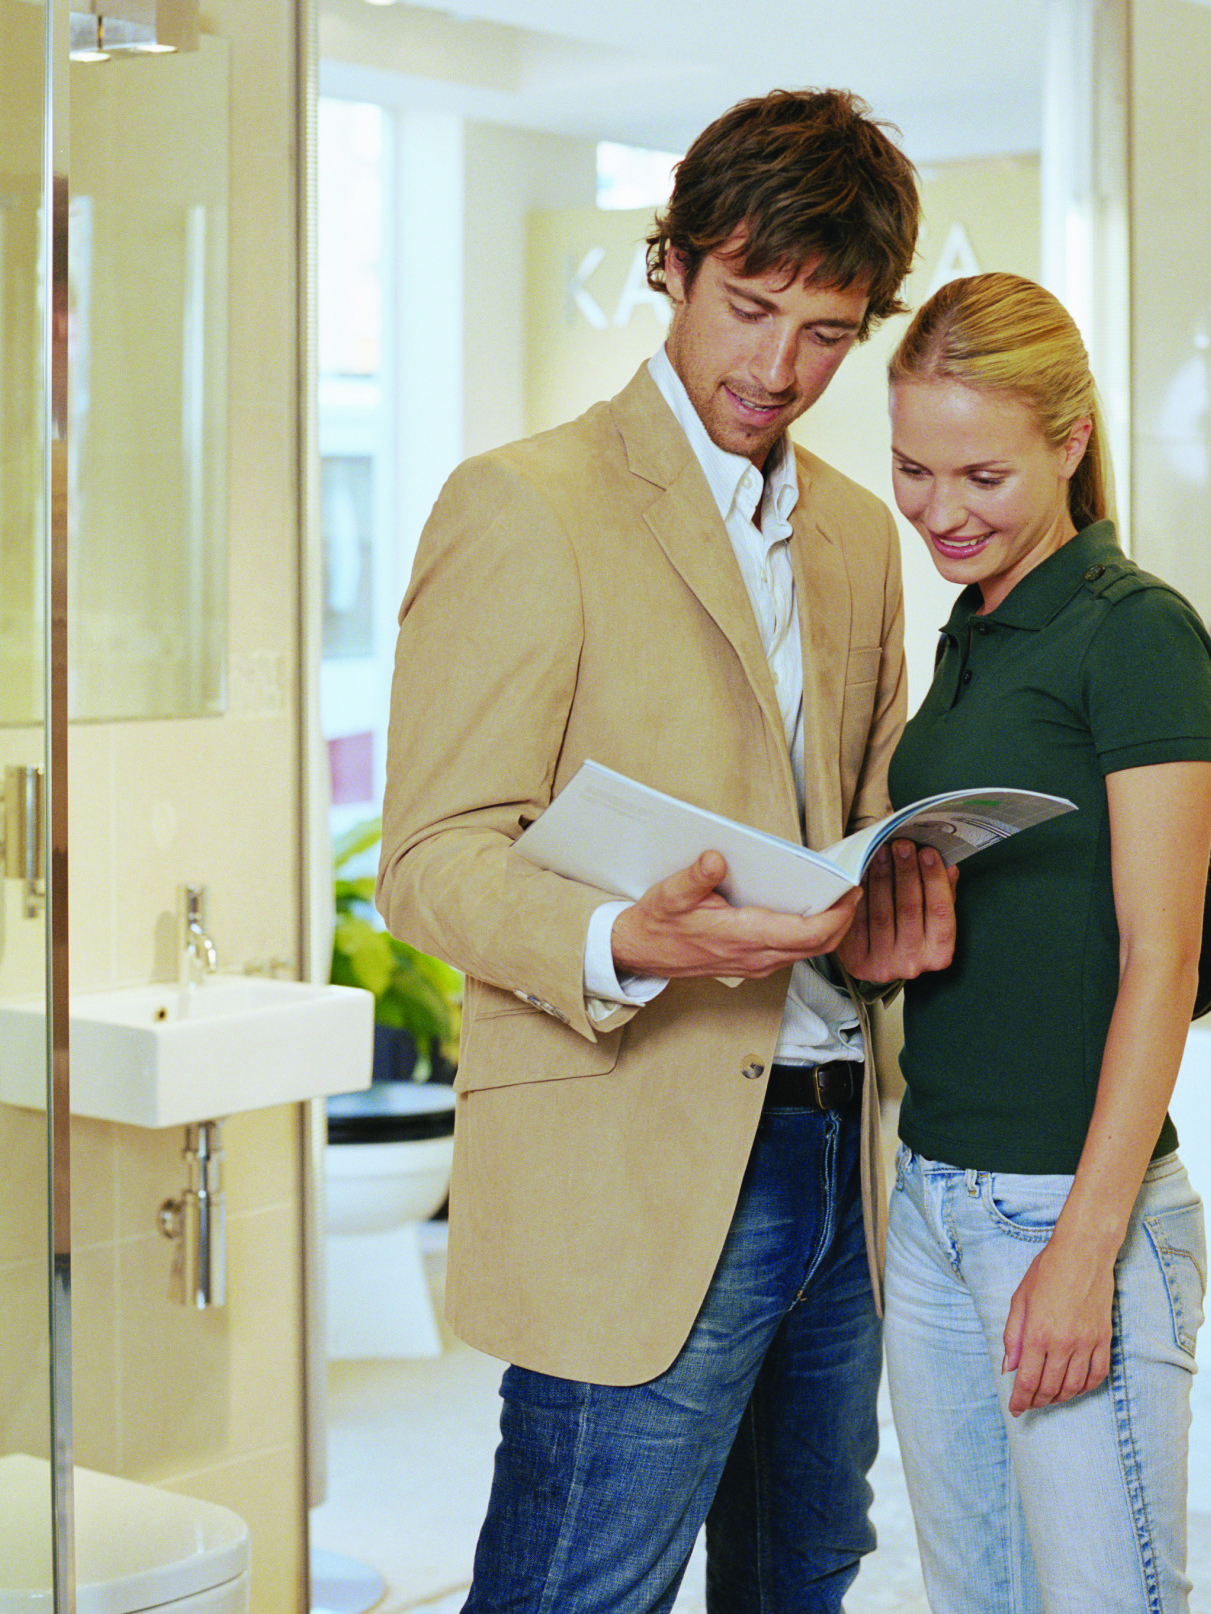 Couple looking at brochure in bathroom showroom, smiling